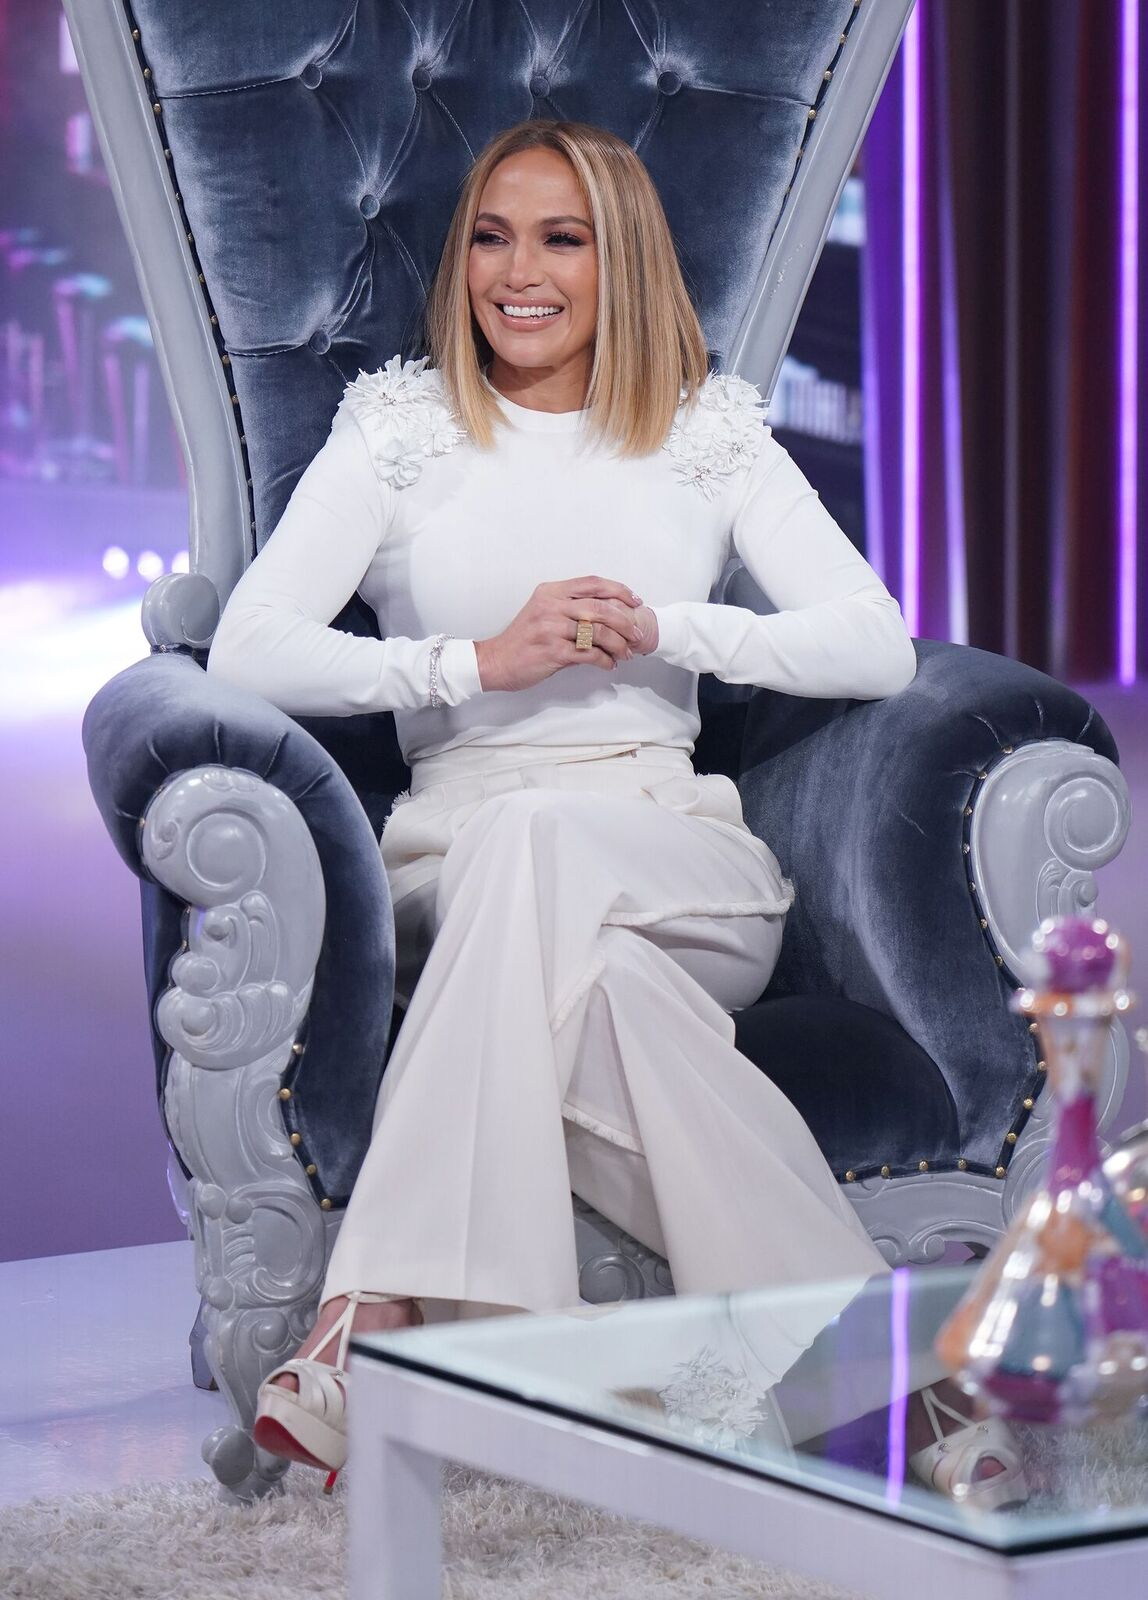 """Jennifer Lopez on the set of """"Un Nuevo Dia"""" at Telemundo Center to promote the film """"Hustlers"""" on September 13, 2019 